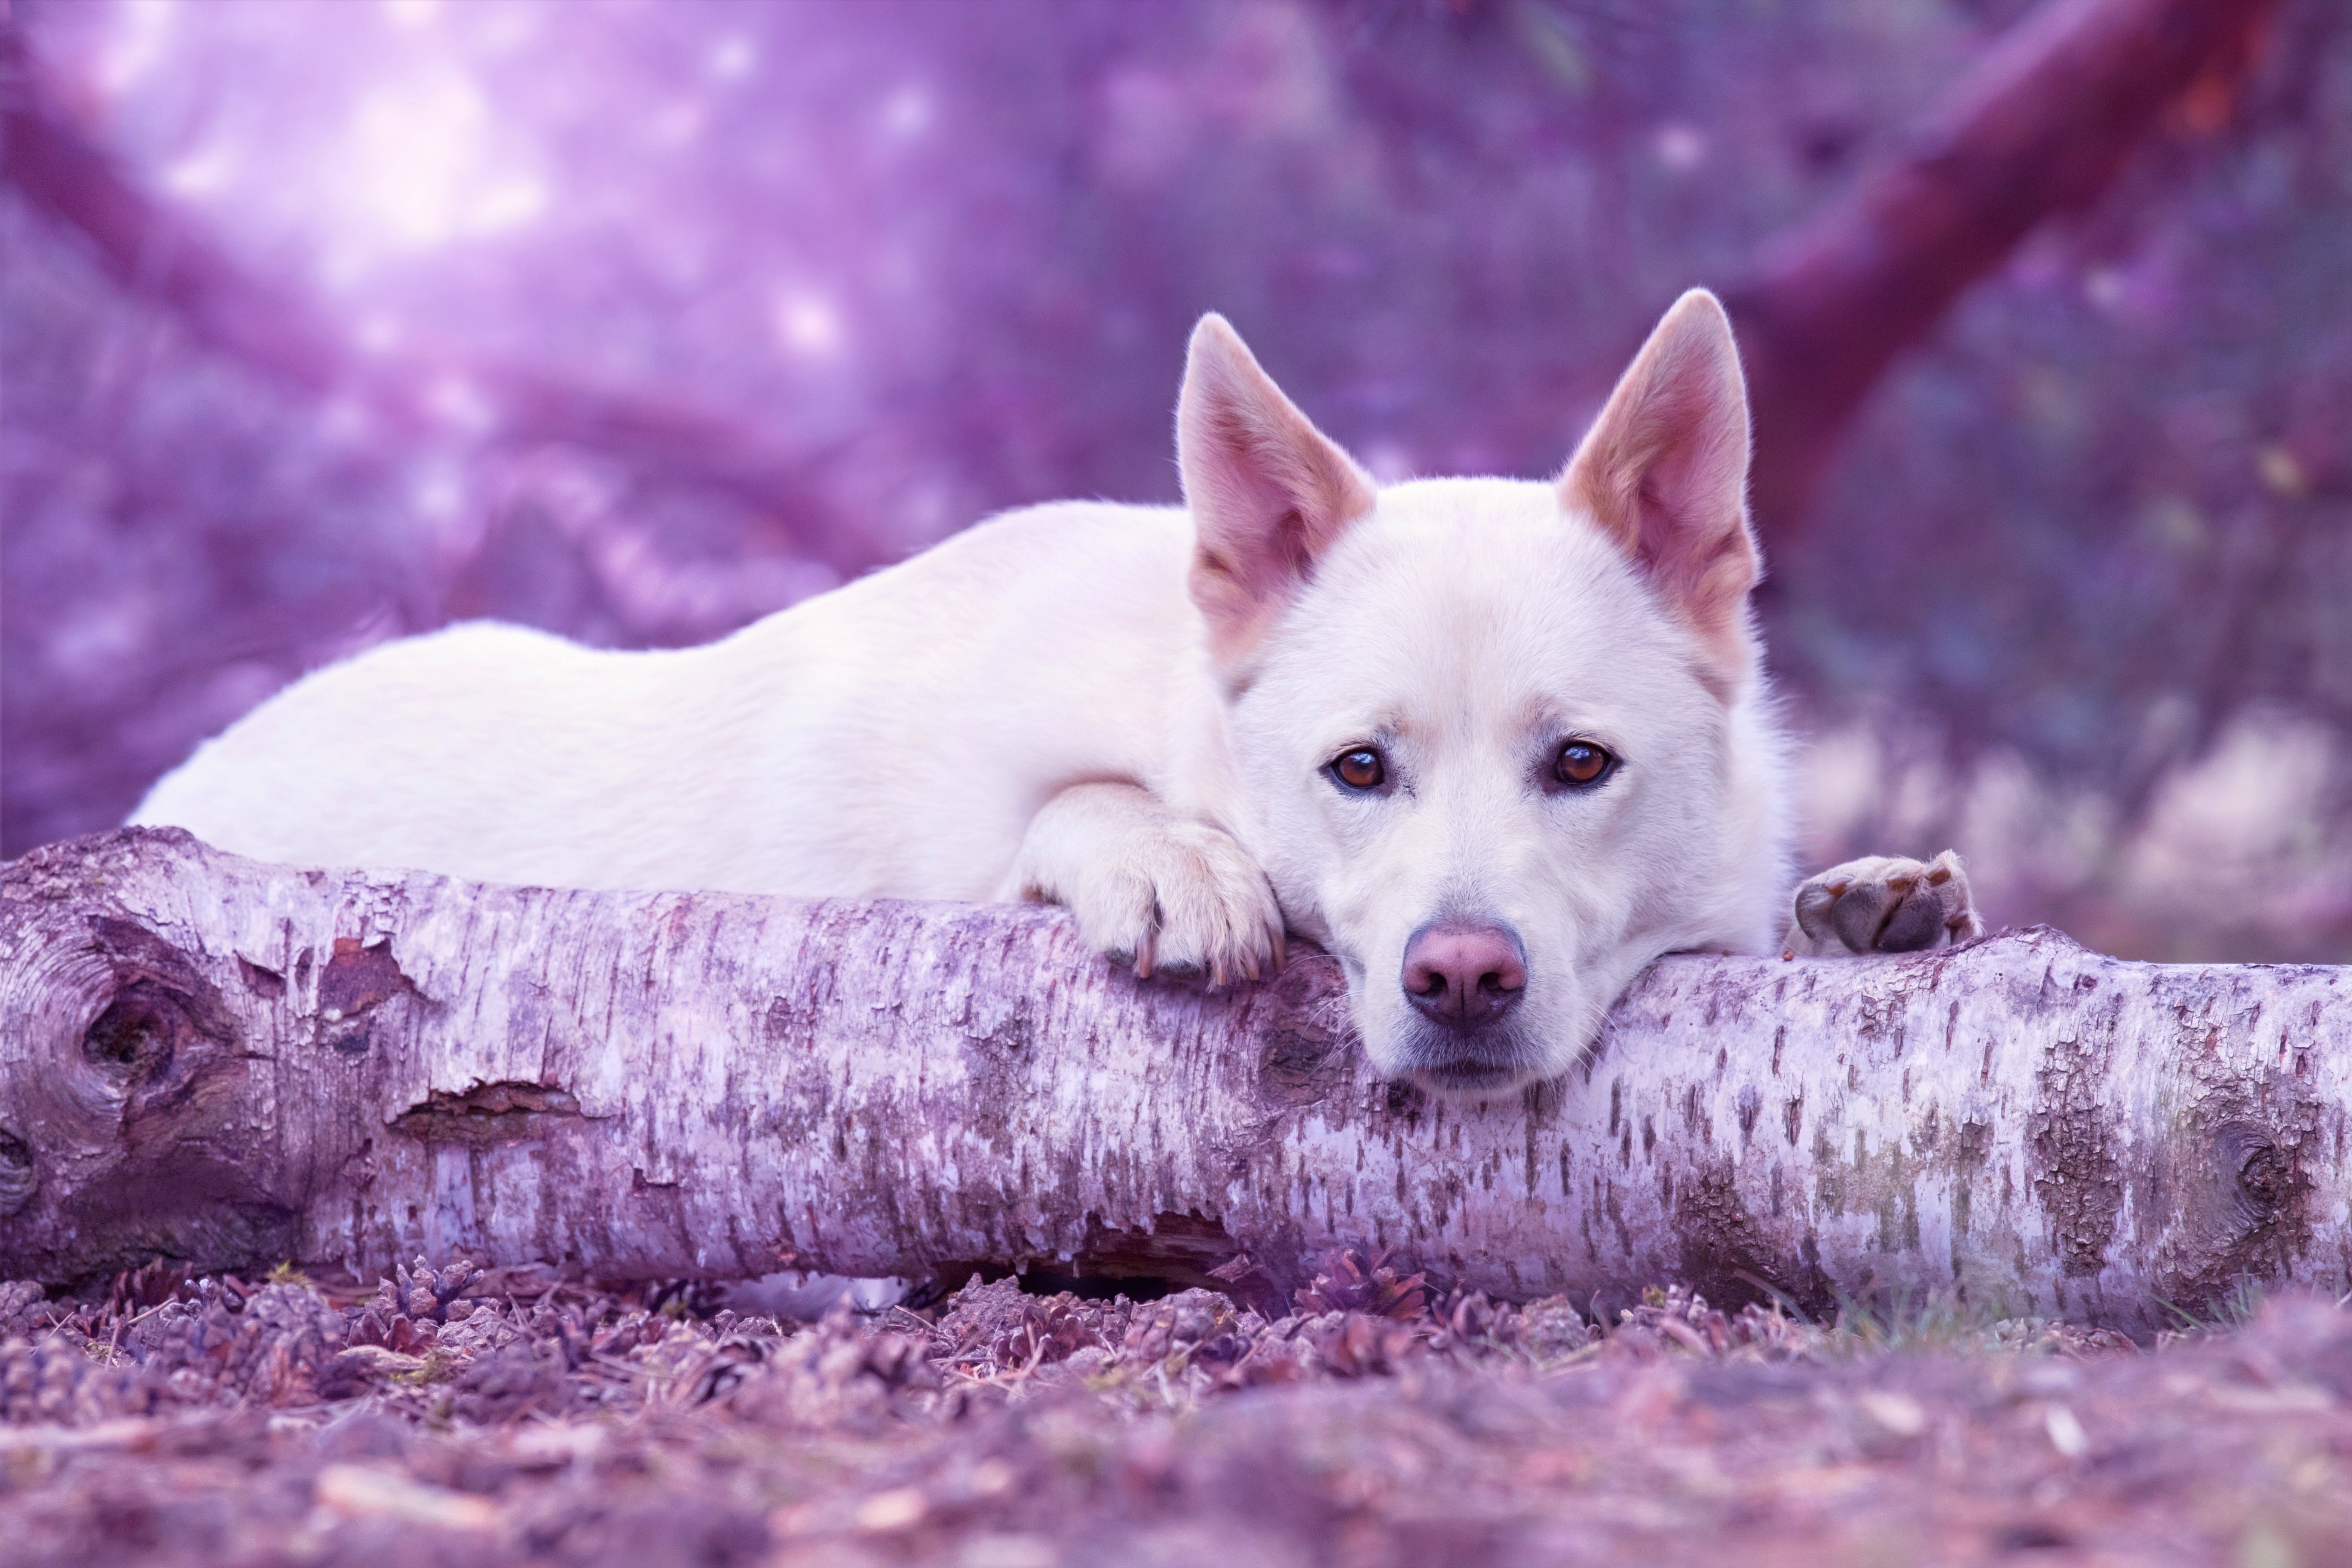 White German Shepherd Lying on Brown Log Close-up Photo